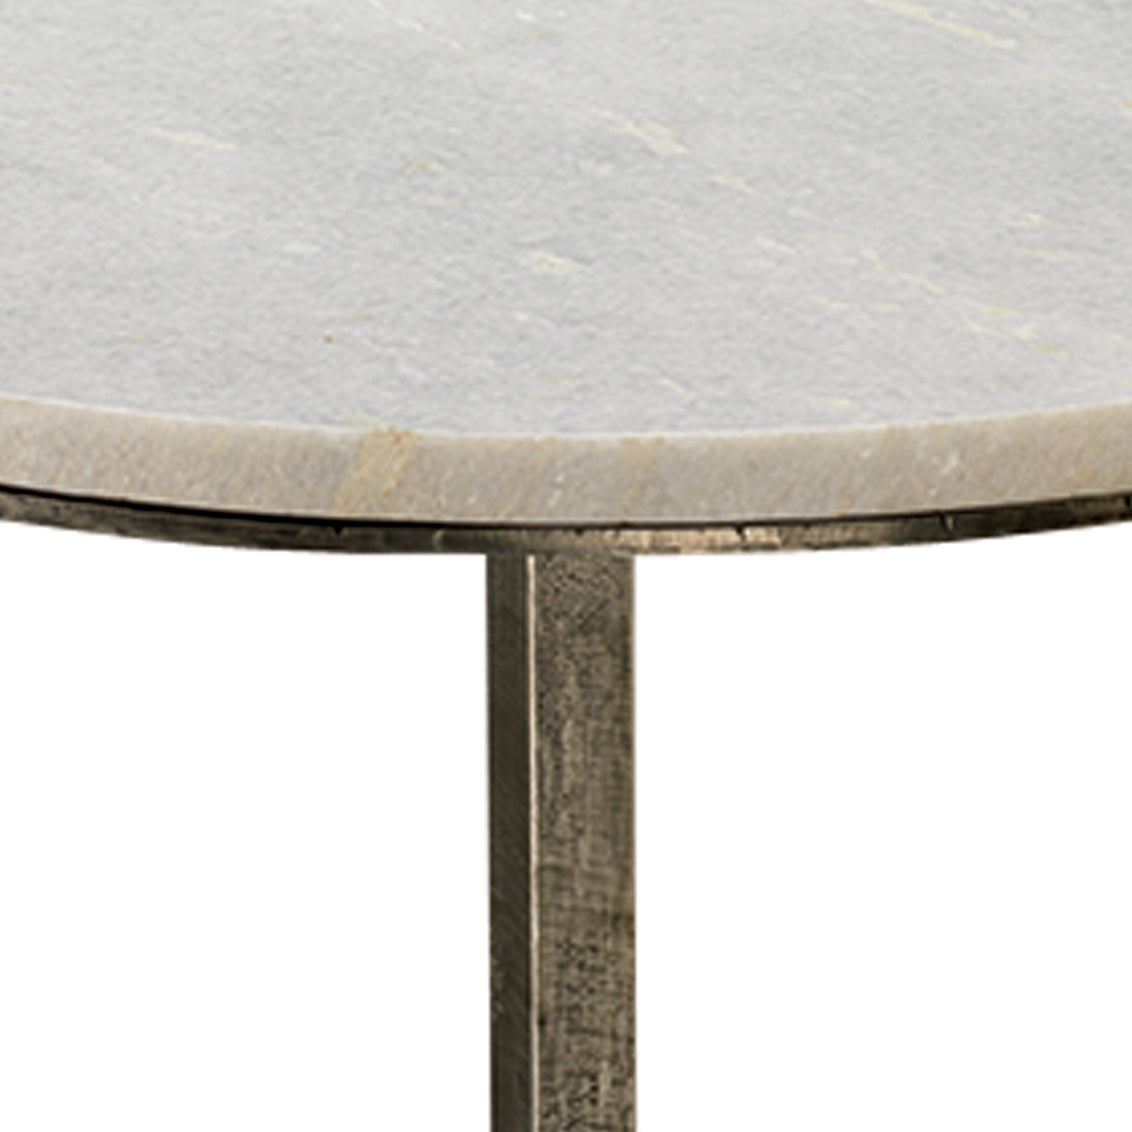 Left Bank Marble Table - Gunmetal